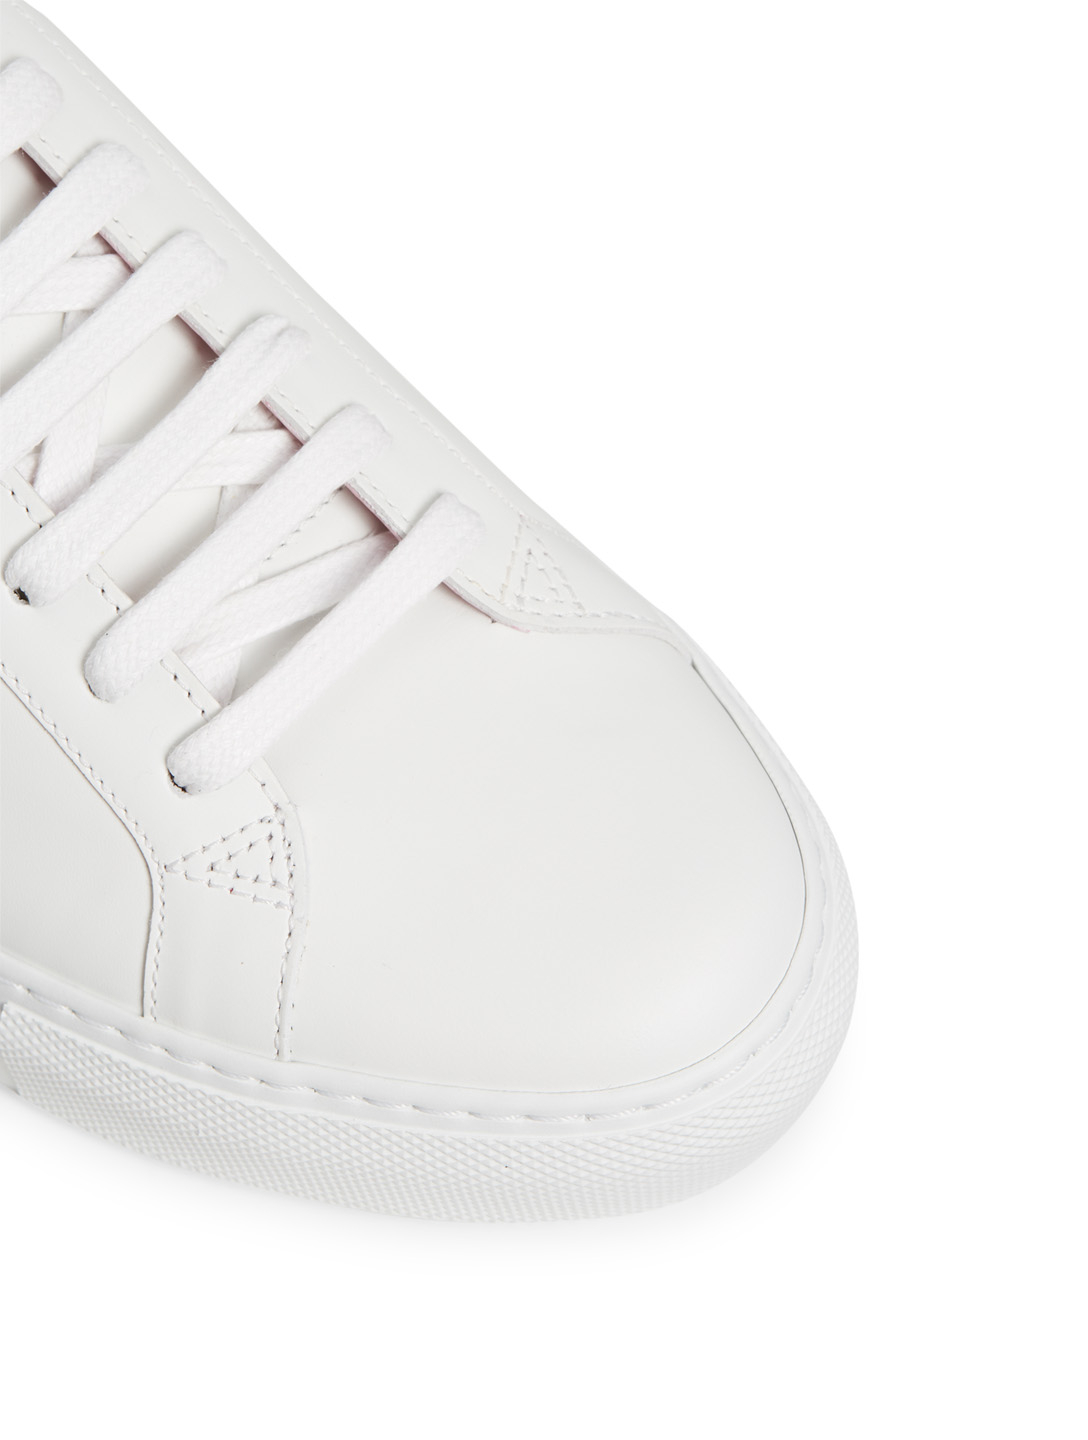 GIVENCHY Urban Street Leather Sneakers Women's White